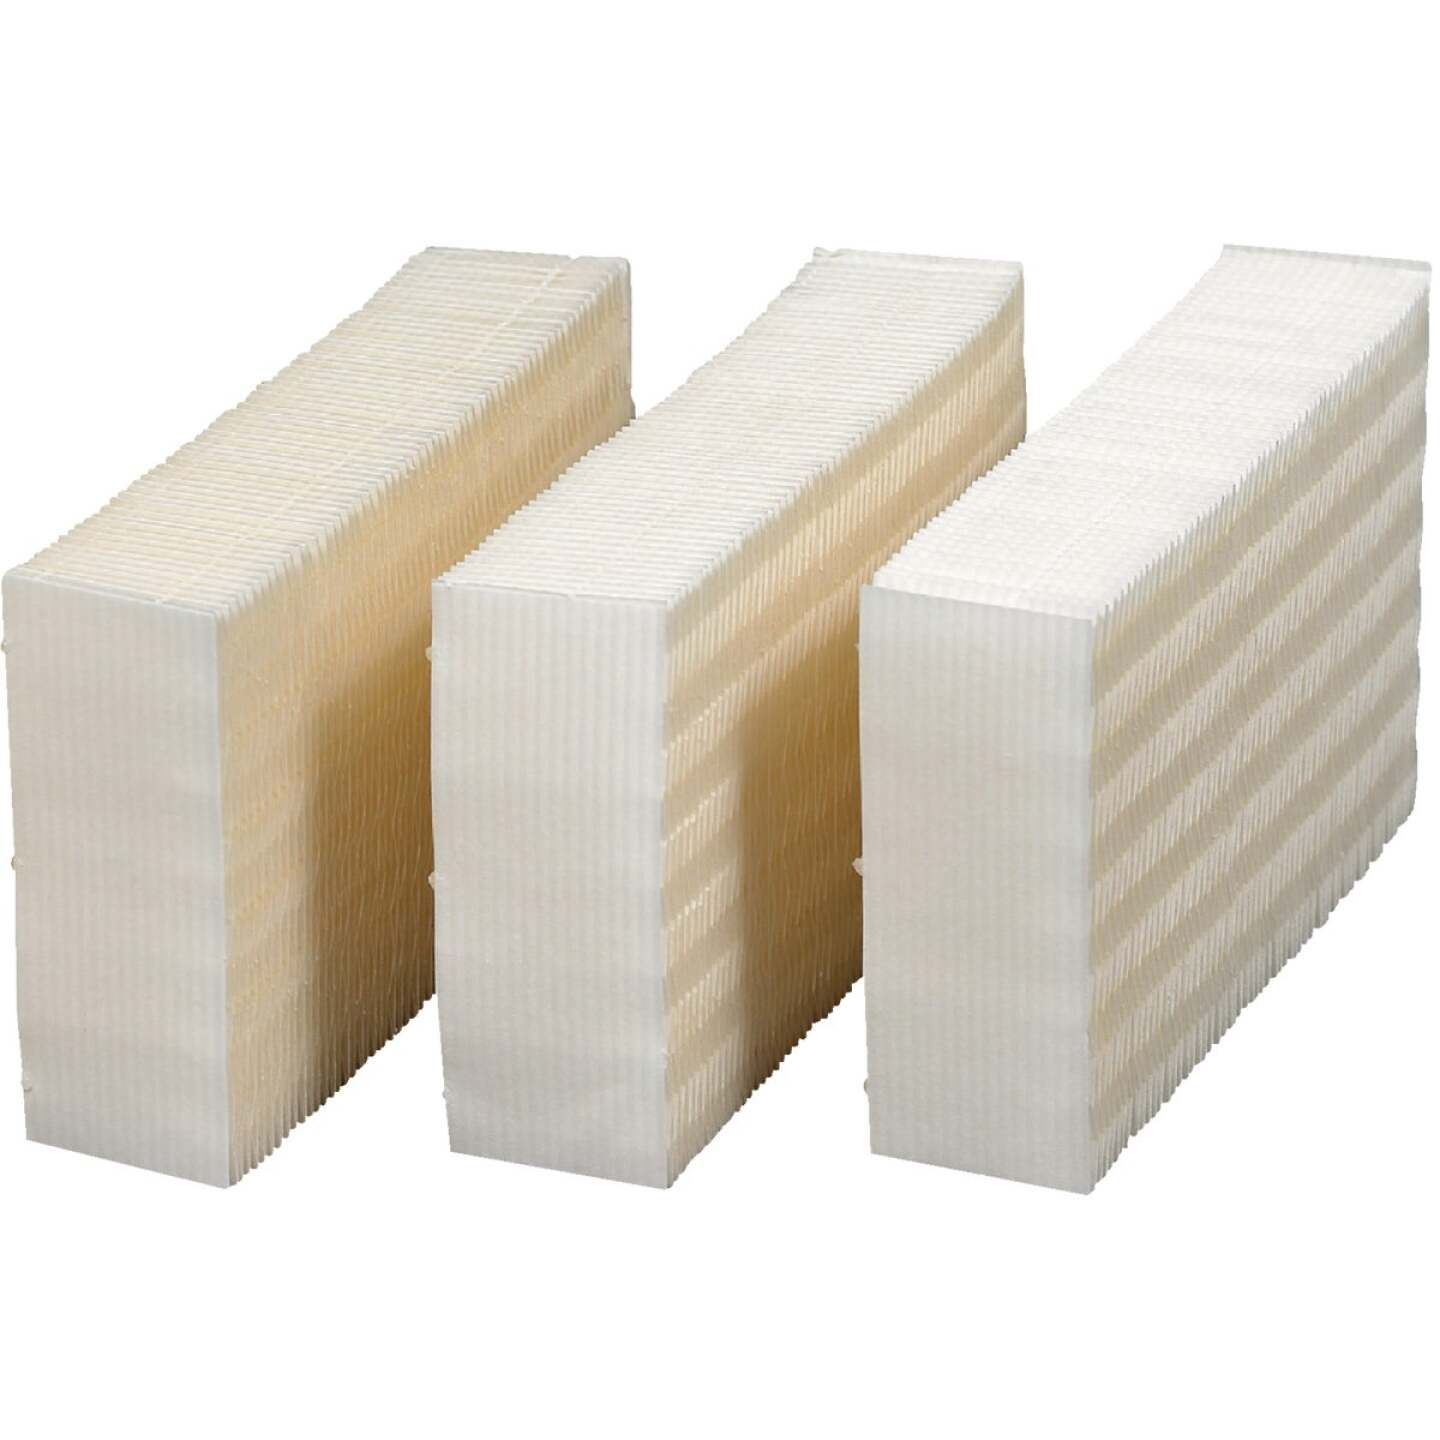 Essick Air HDC311 Humidifier Wick Filter (3-Pack) Image 1